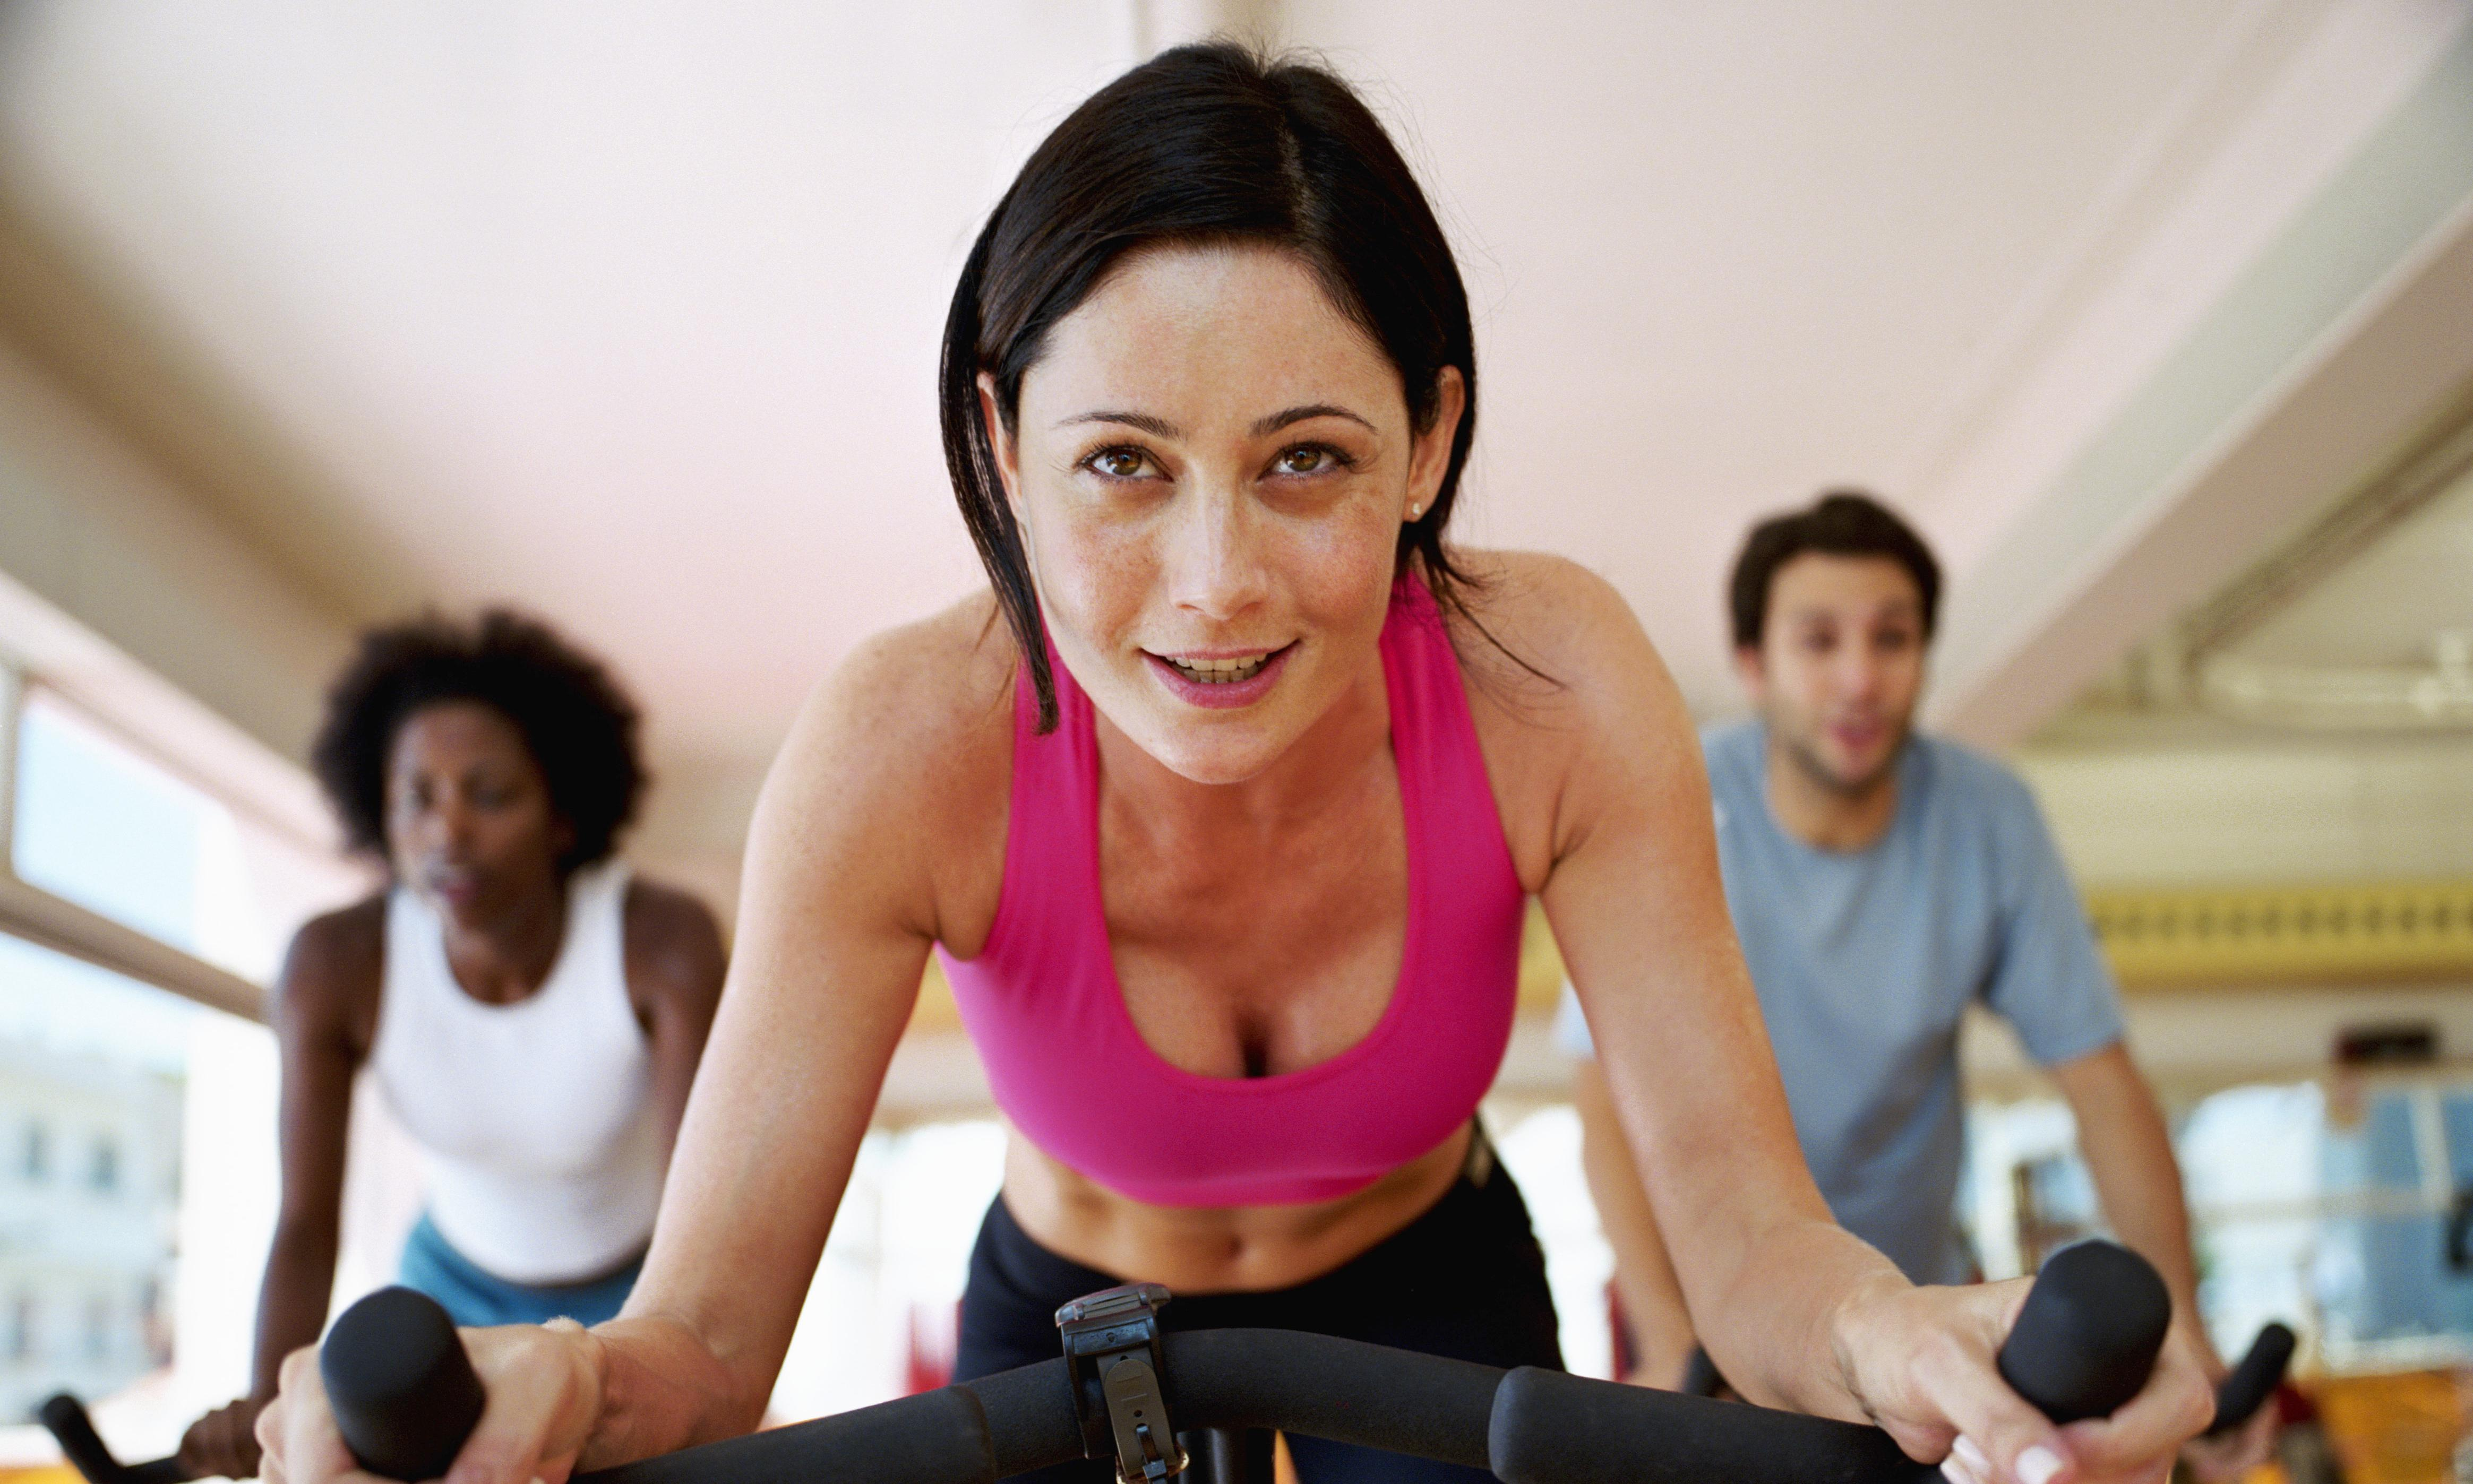 Is one minute of high-intensity exercise really enough to get fit?